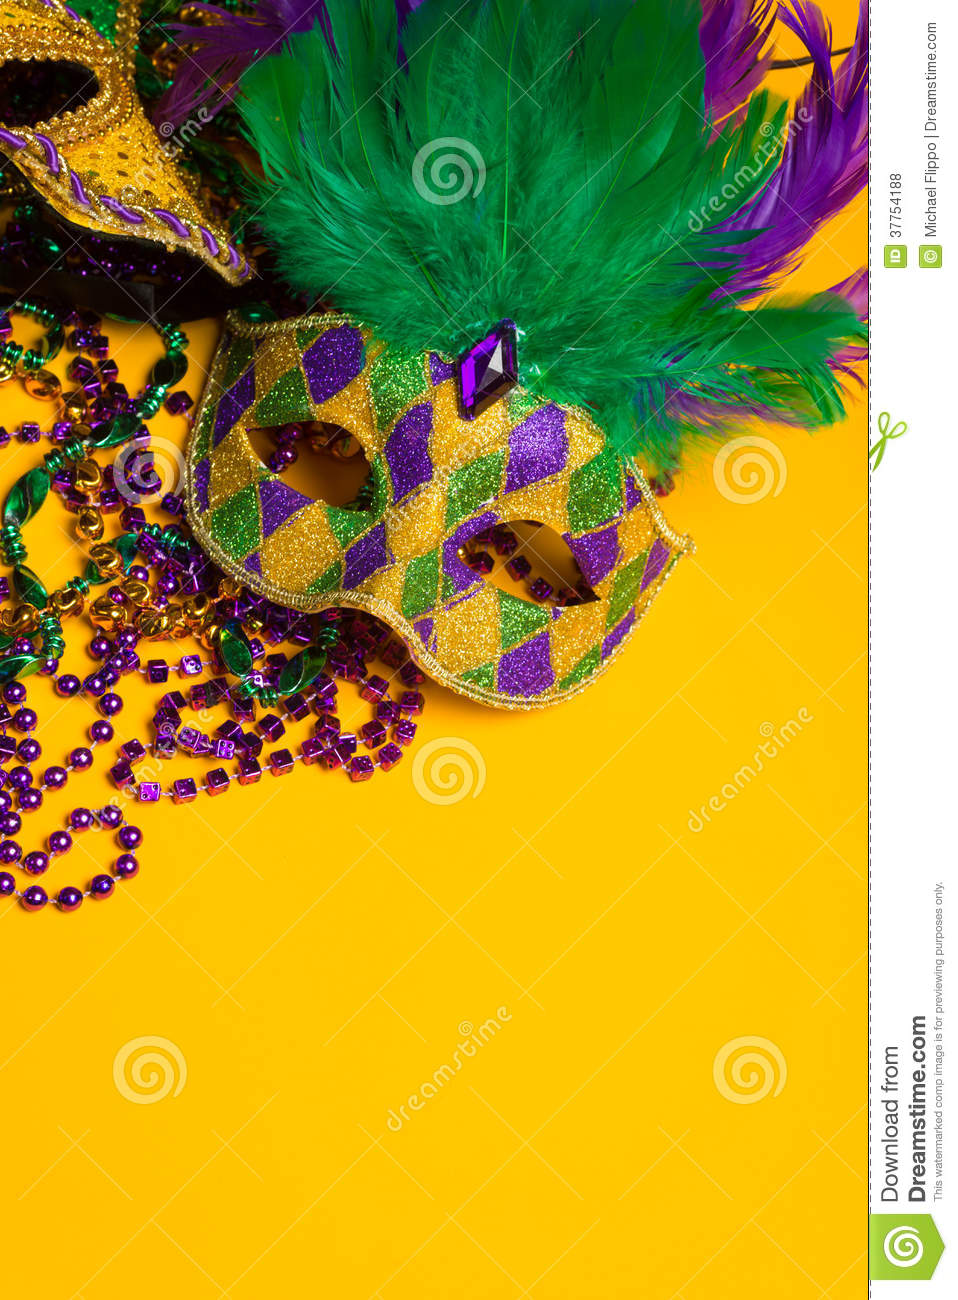 Colorful group of Mardi Gras or venetian masks